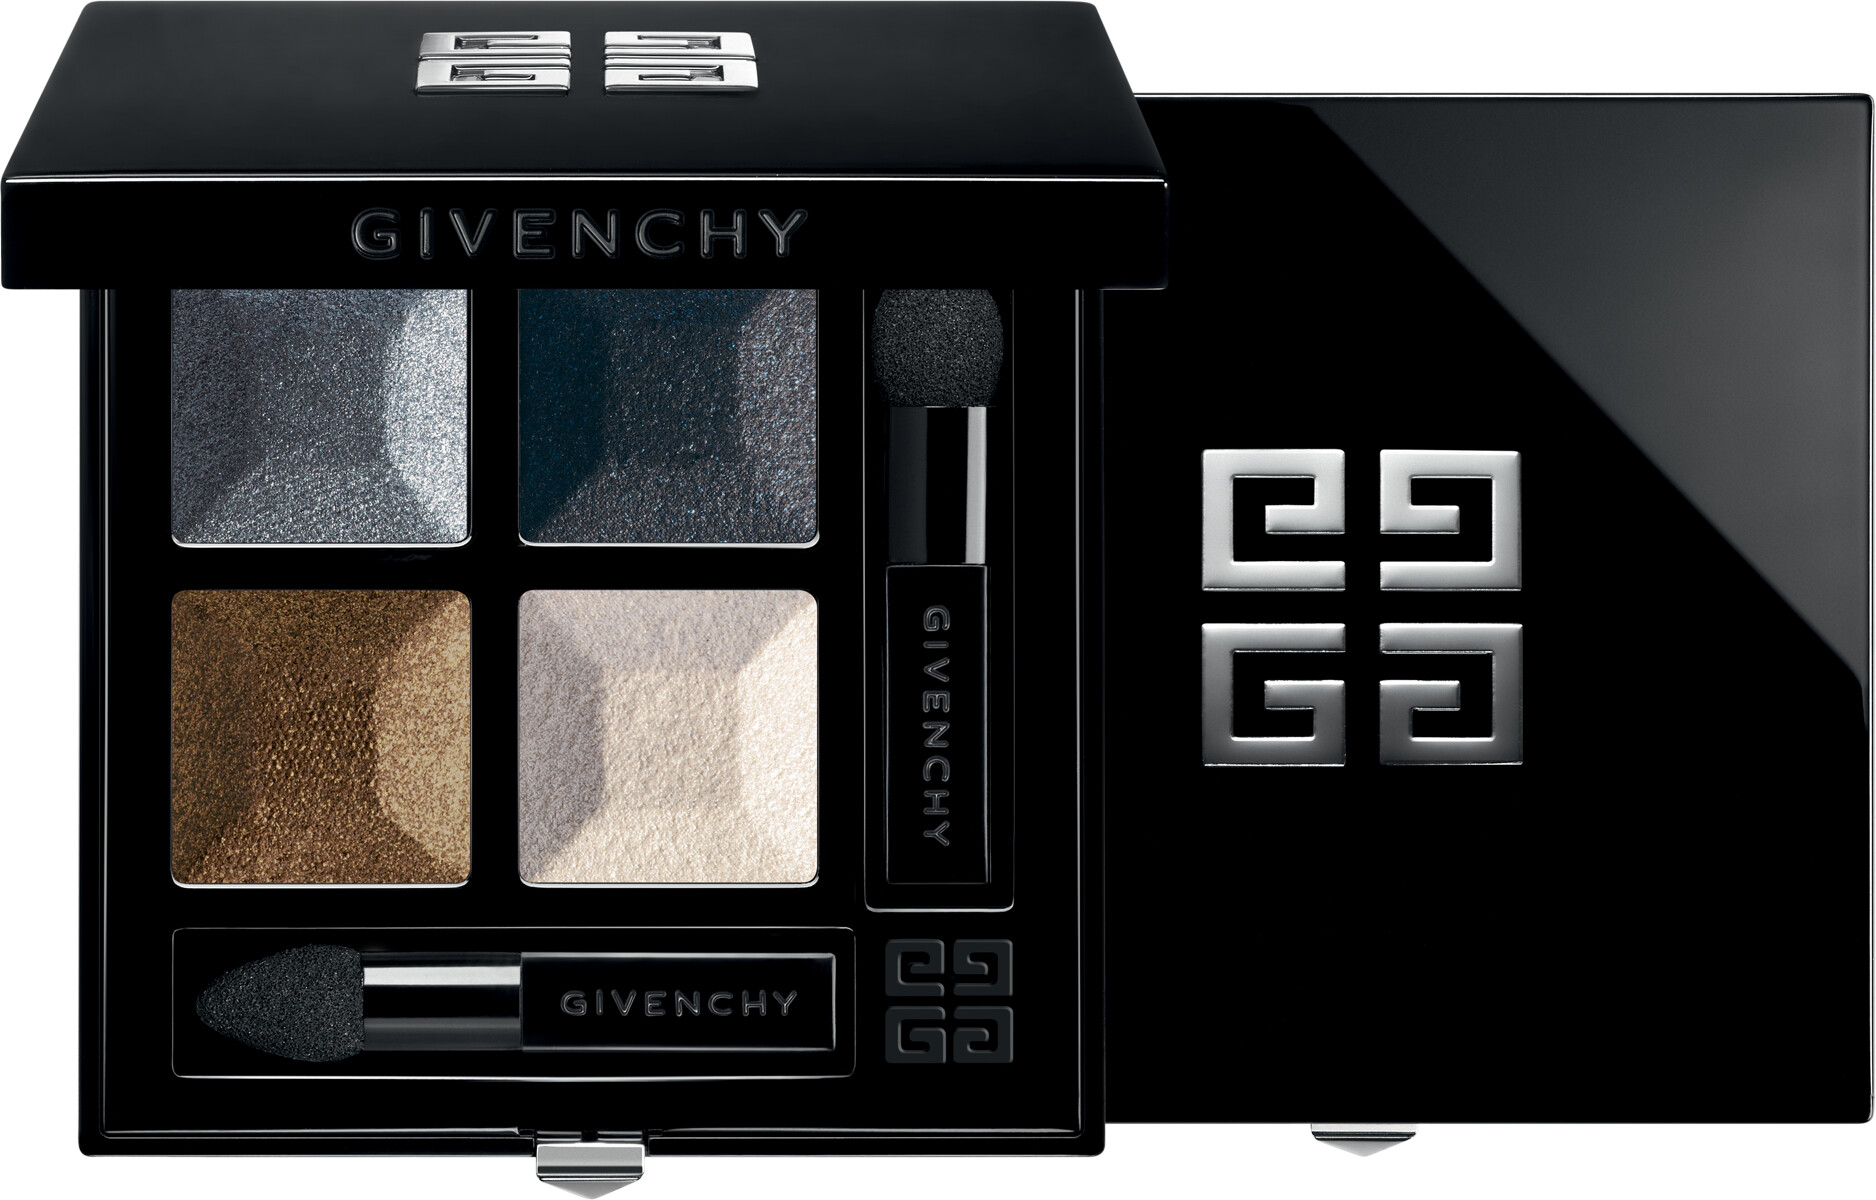 GIVENCHY Prisme Quatuor  Intense & Radiant Eyeshadow 4 Colors 4g 04  Impertinence